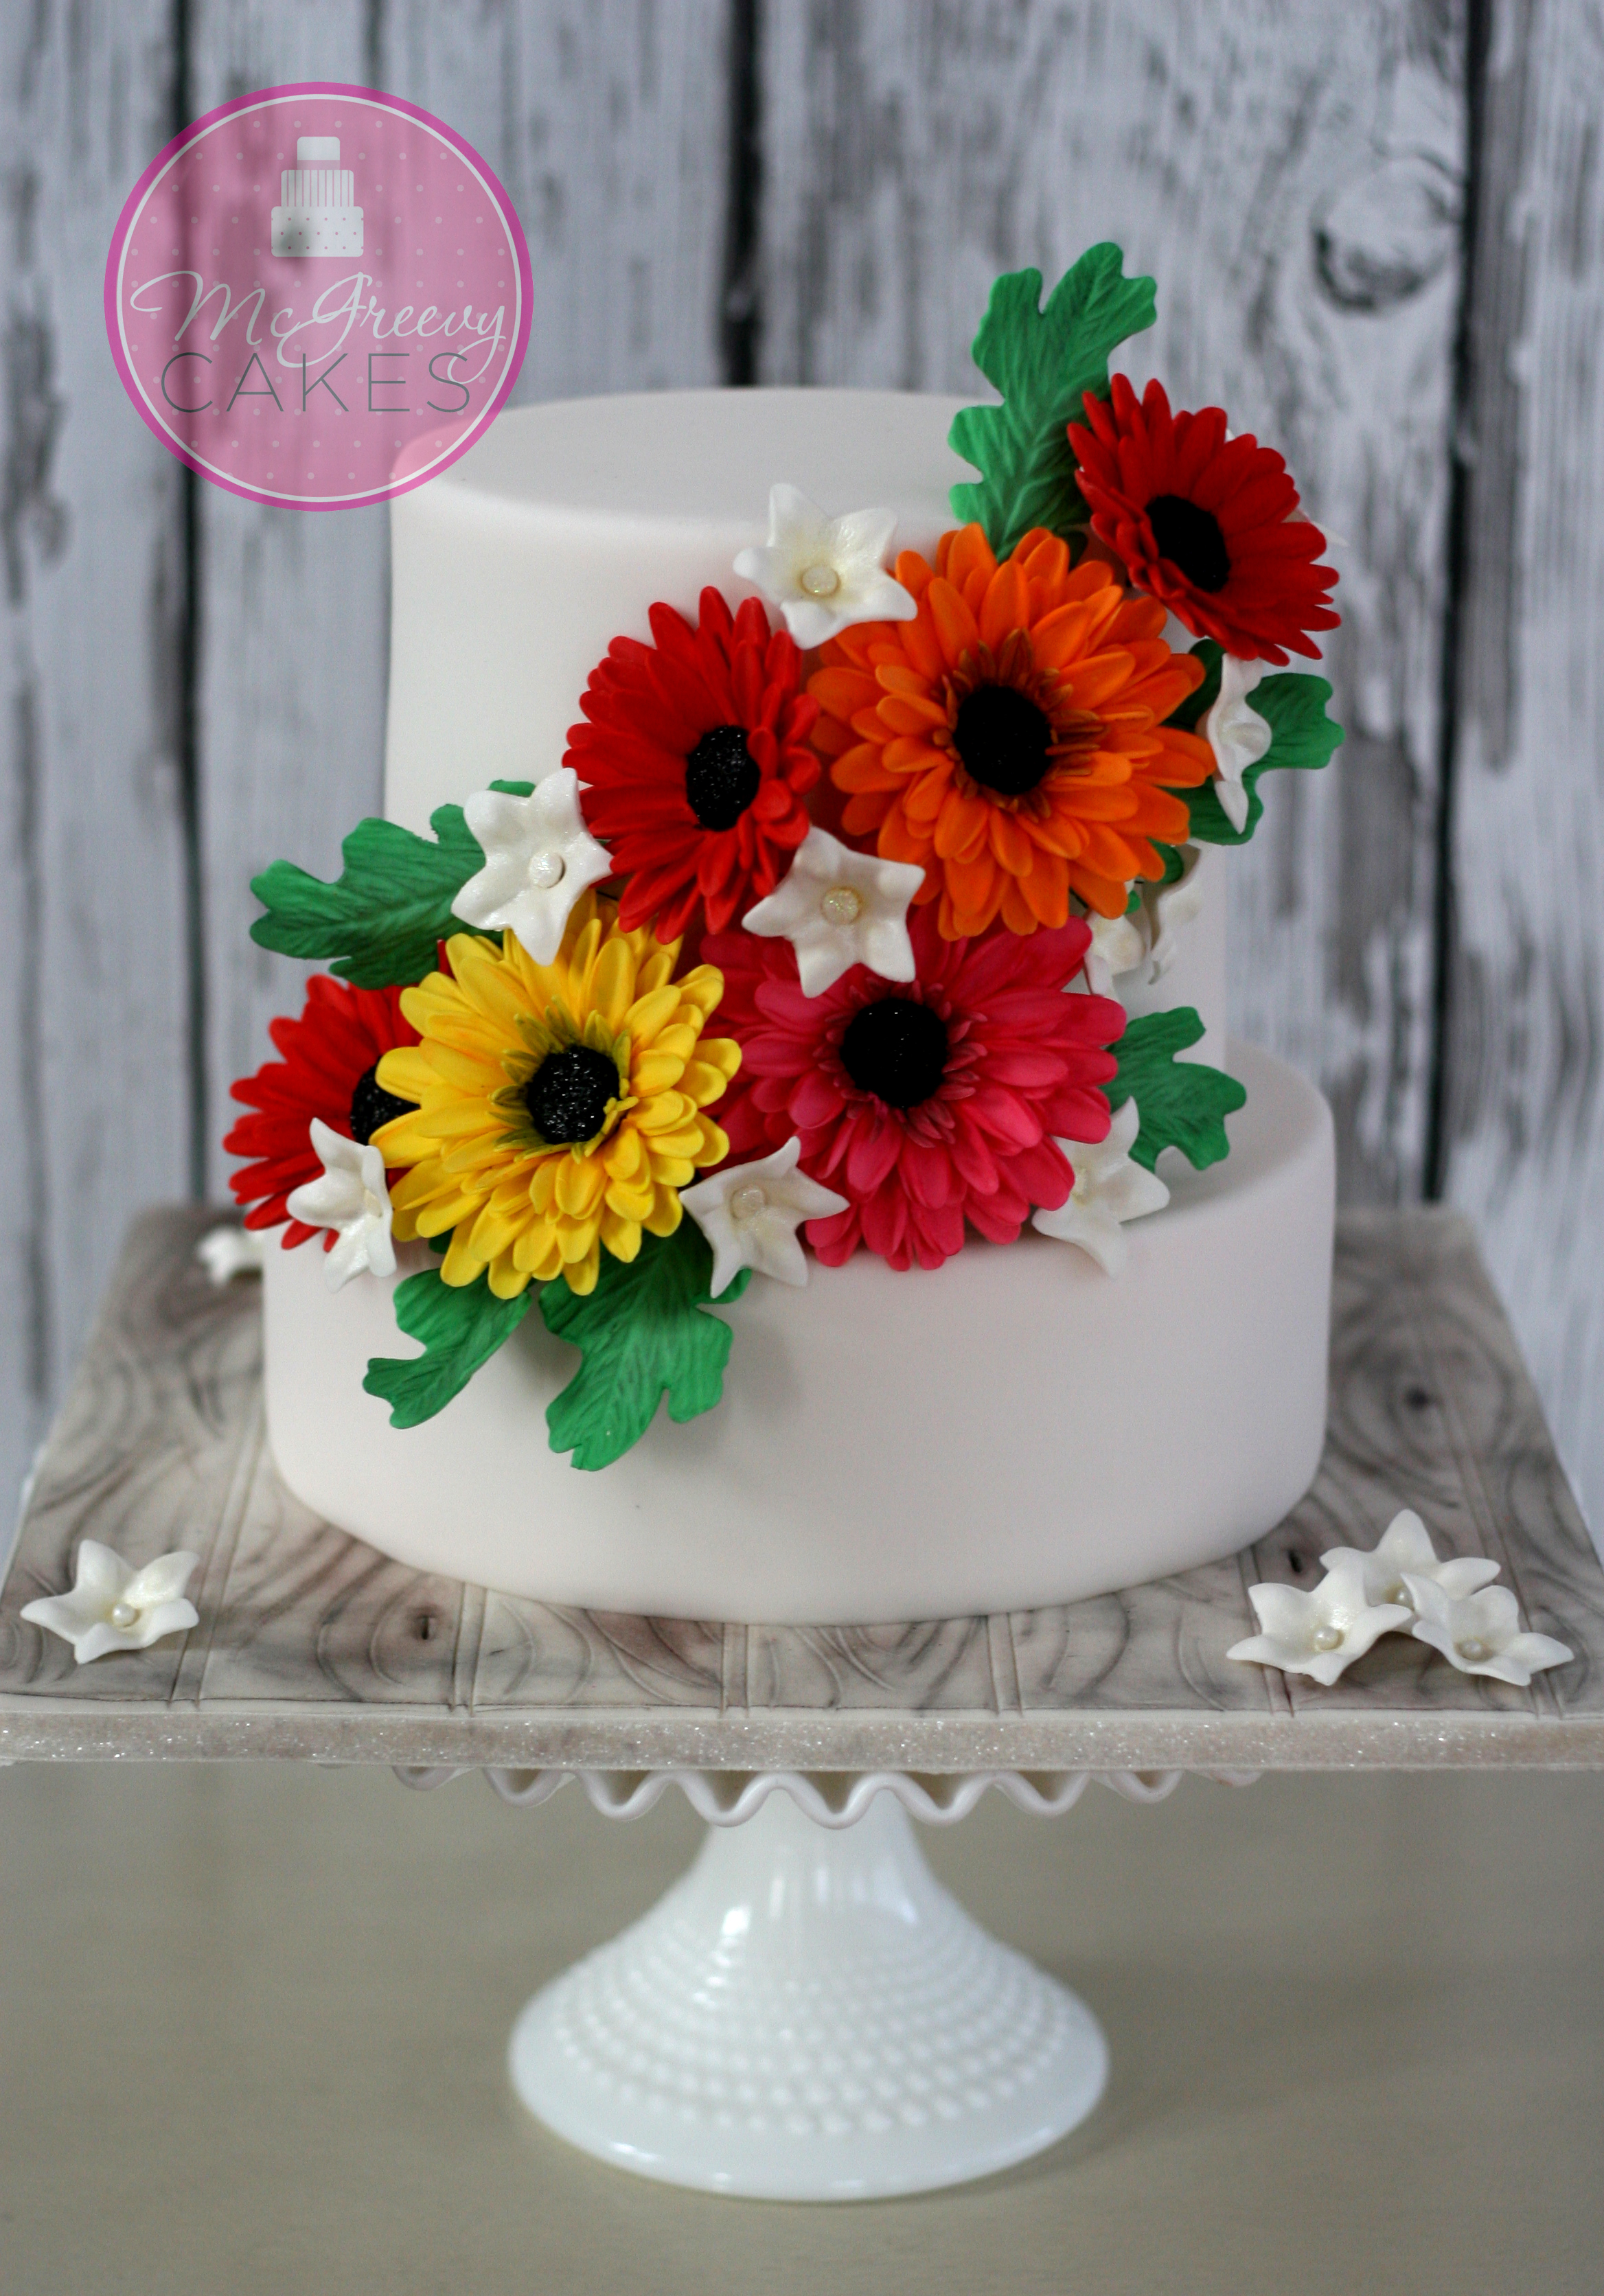 wedding cake pictures with gerbera daisies 70th anniversary gerbera cake mcgreevy cakes 23449